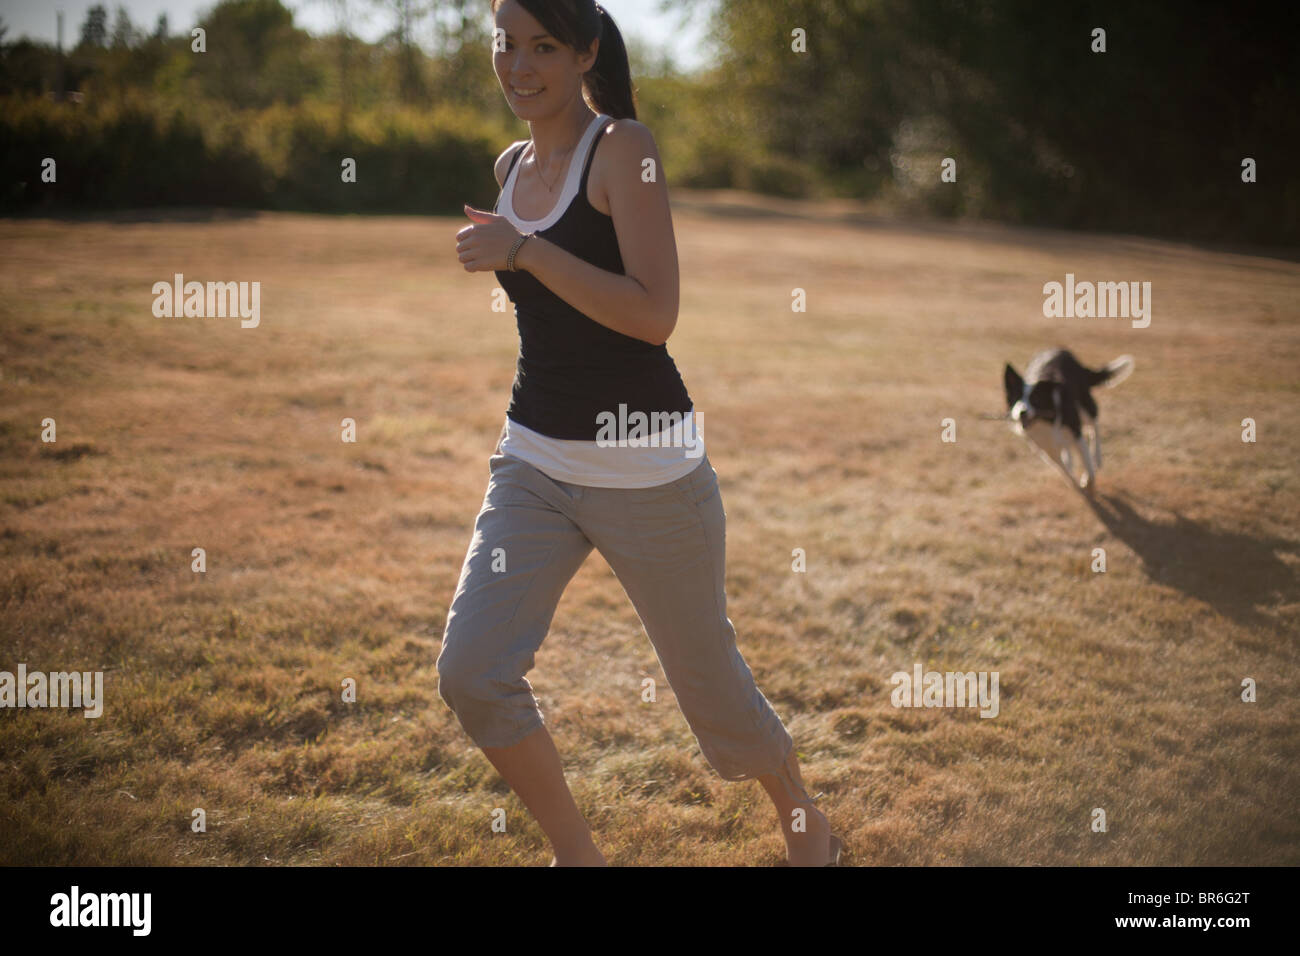 A lifestyle image of a young female dog trainer playing with her border collie dog at a park in Vancouver, BC. Canada. - Stock Image